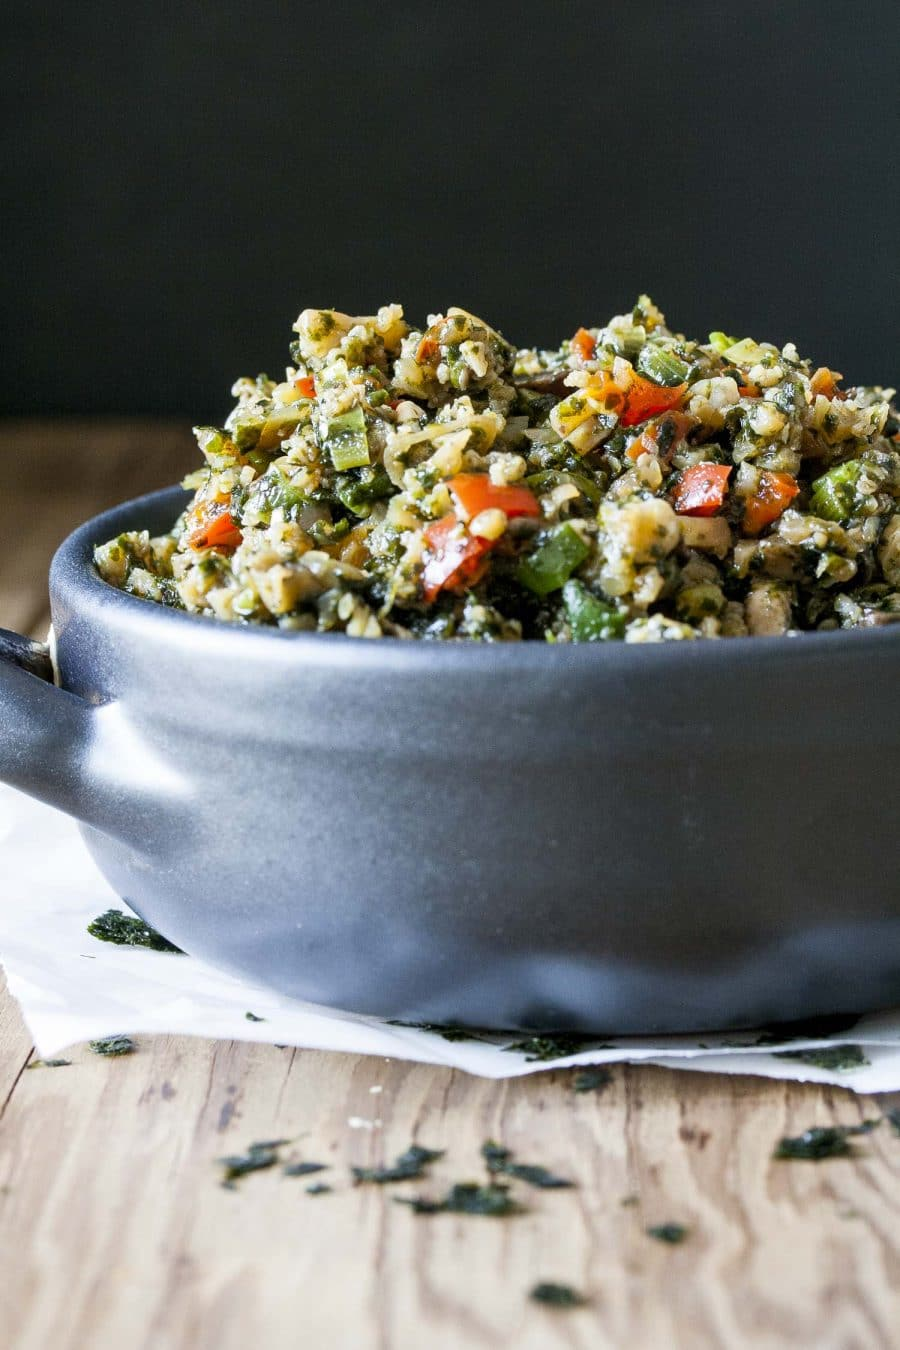 Superfood Stir Fry Cauliflower Rice